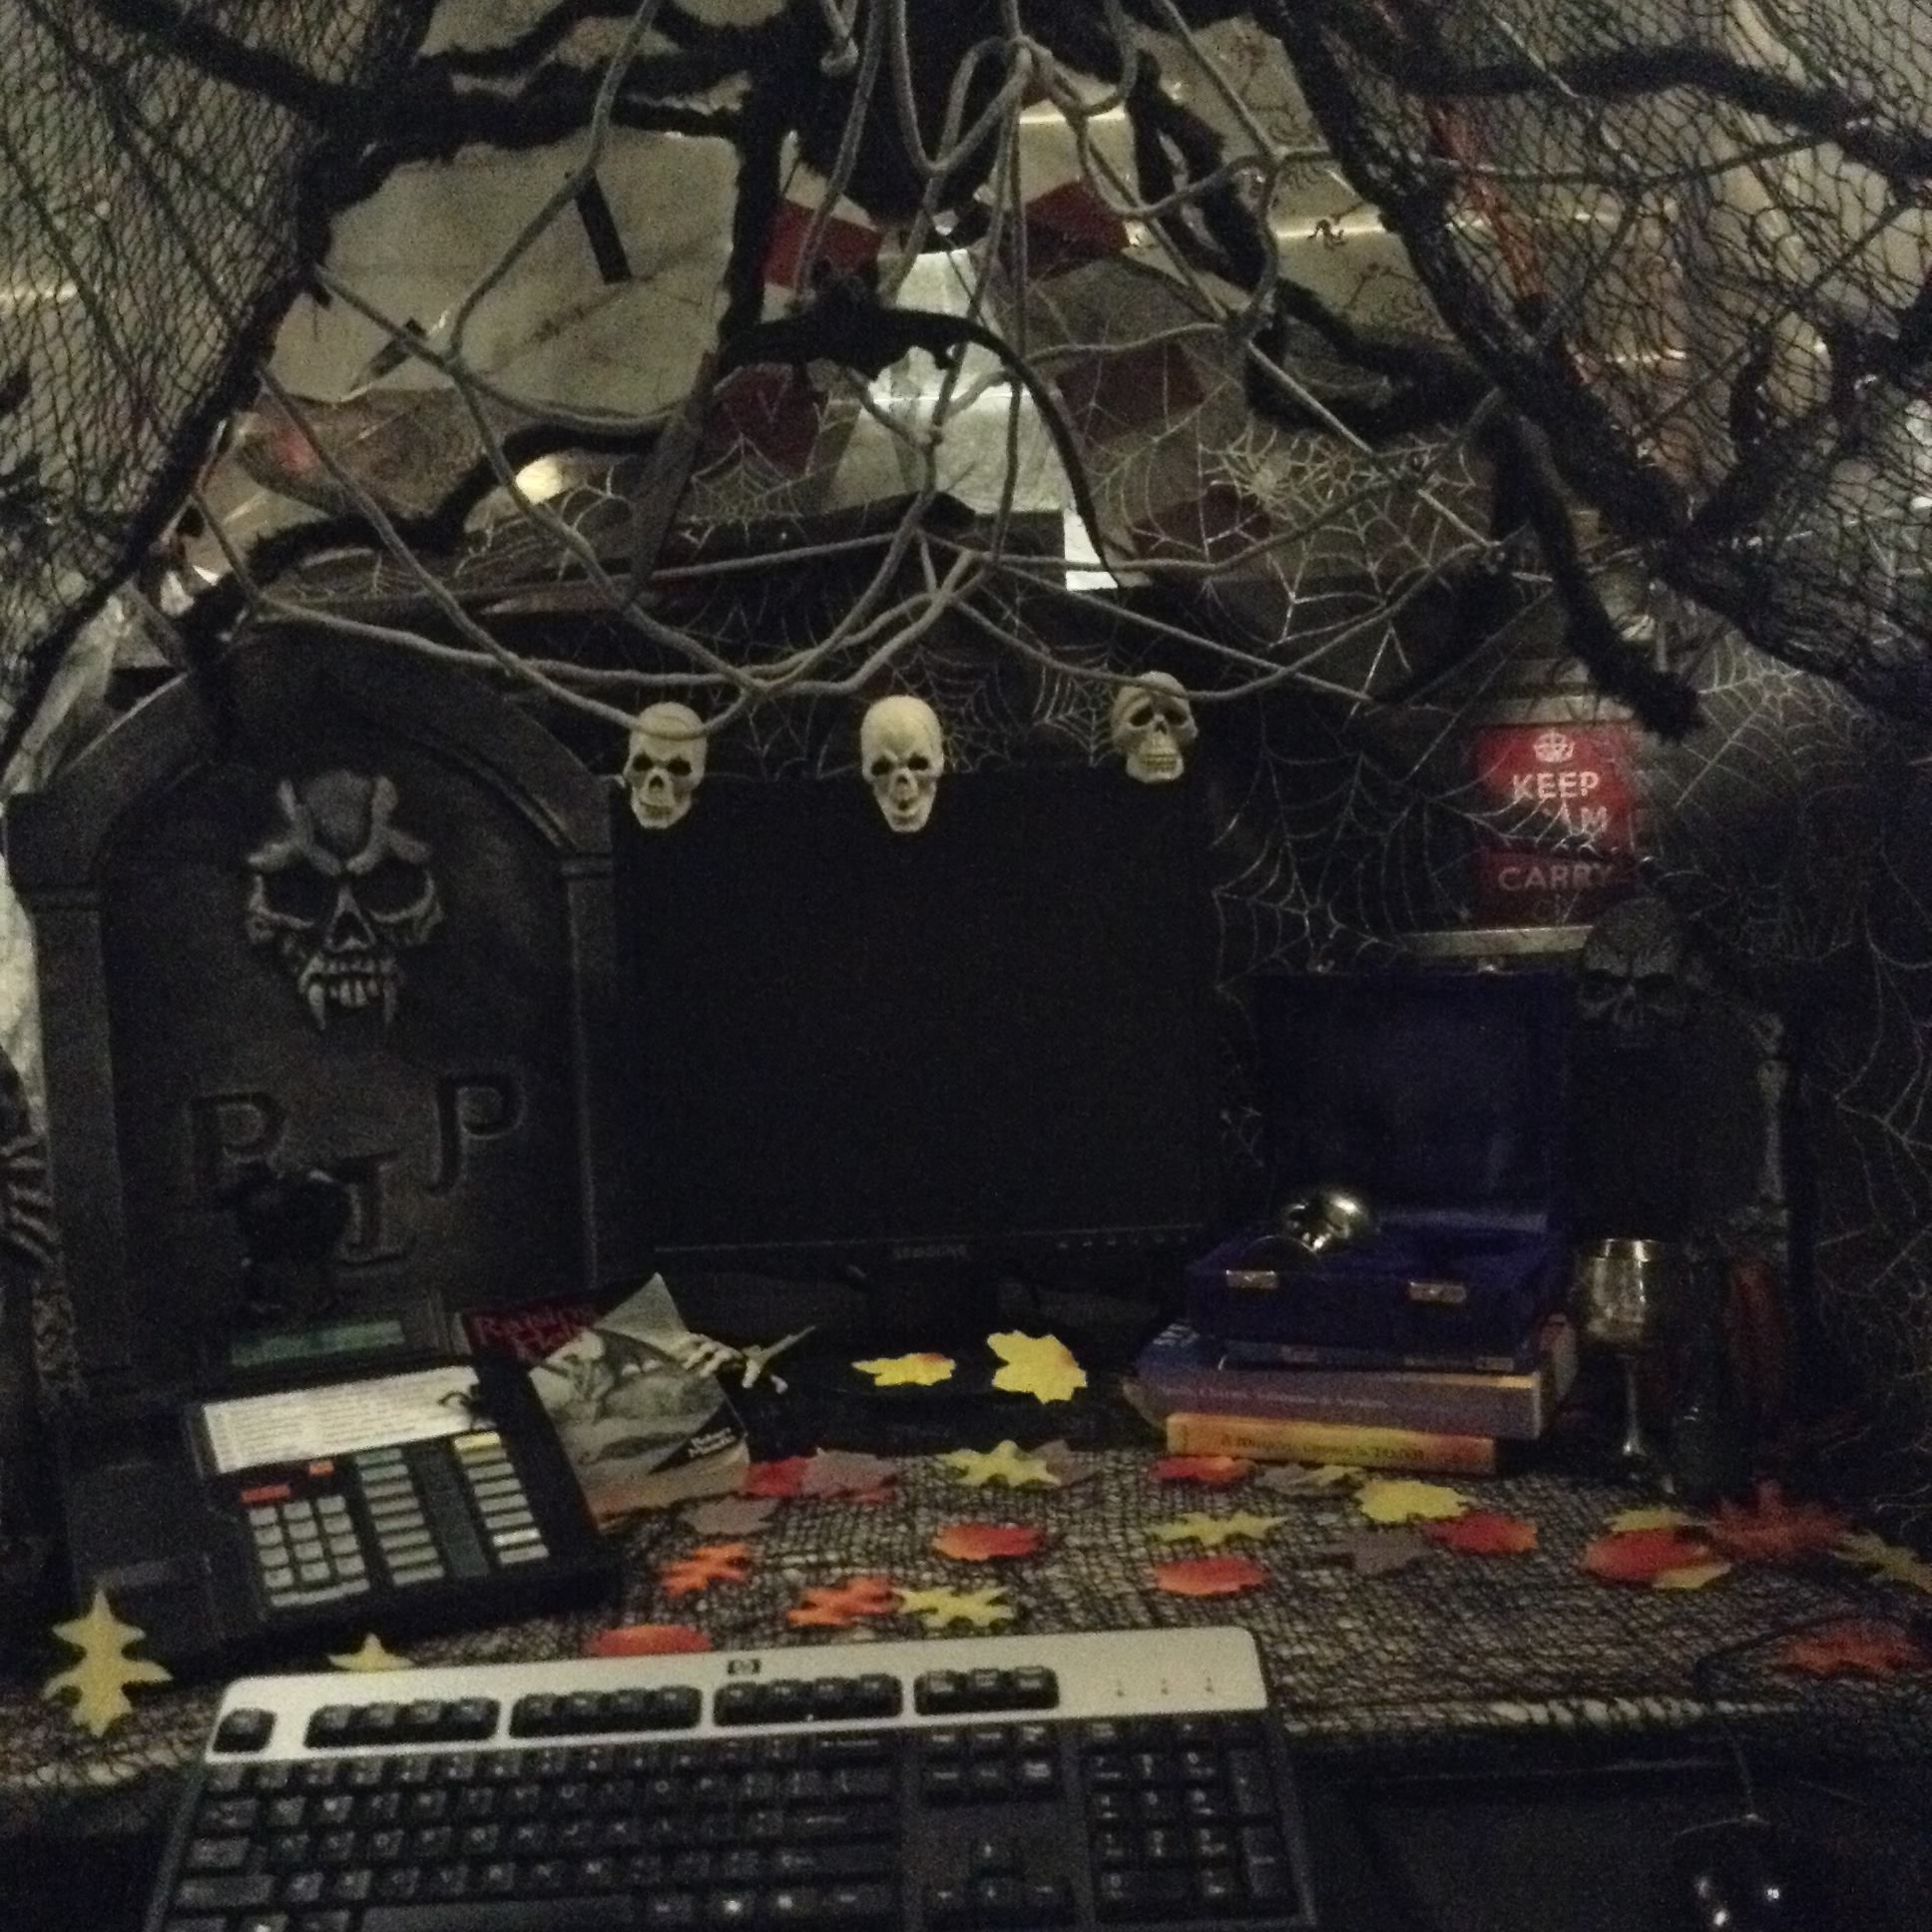 This Year S Work Pod Giant Tent And This Is The Inside My Halloween Cubicle Office Halloween Decorations Scary Halloween Decorations Halloween Cubicle